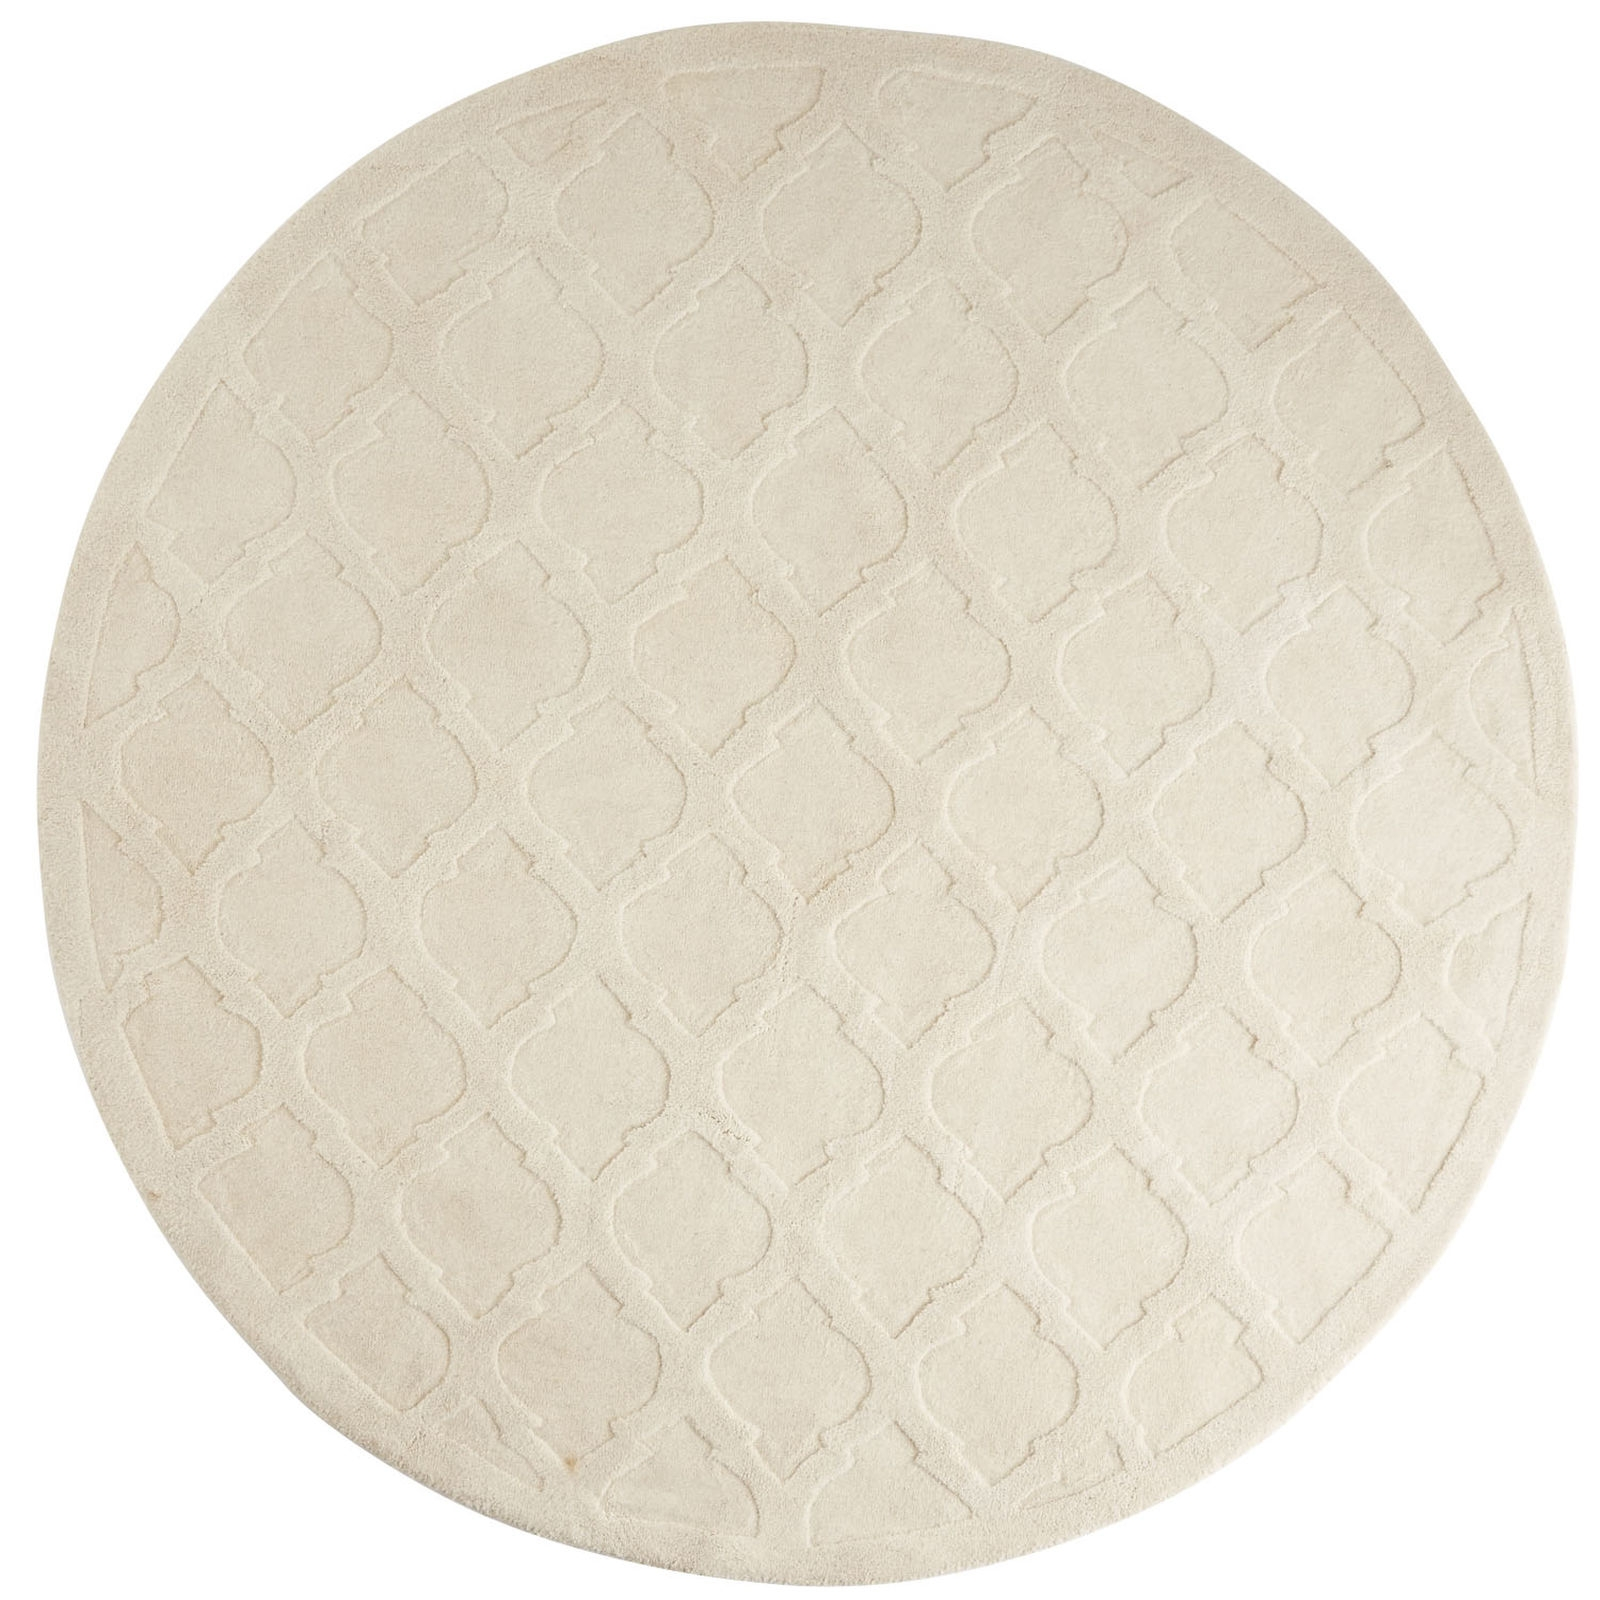 Cool Round Area Rugs Cheap Small Circular Rugs Telstraus Home Rug With Circular Carpets (Image 5 of 15)